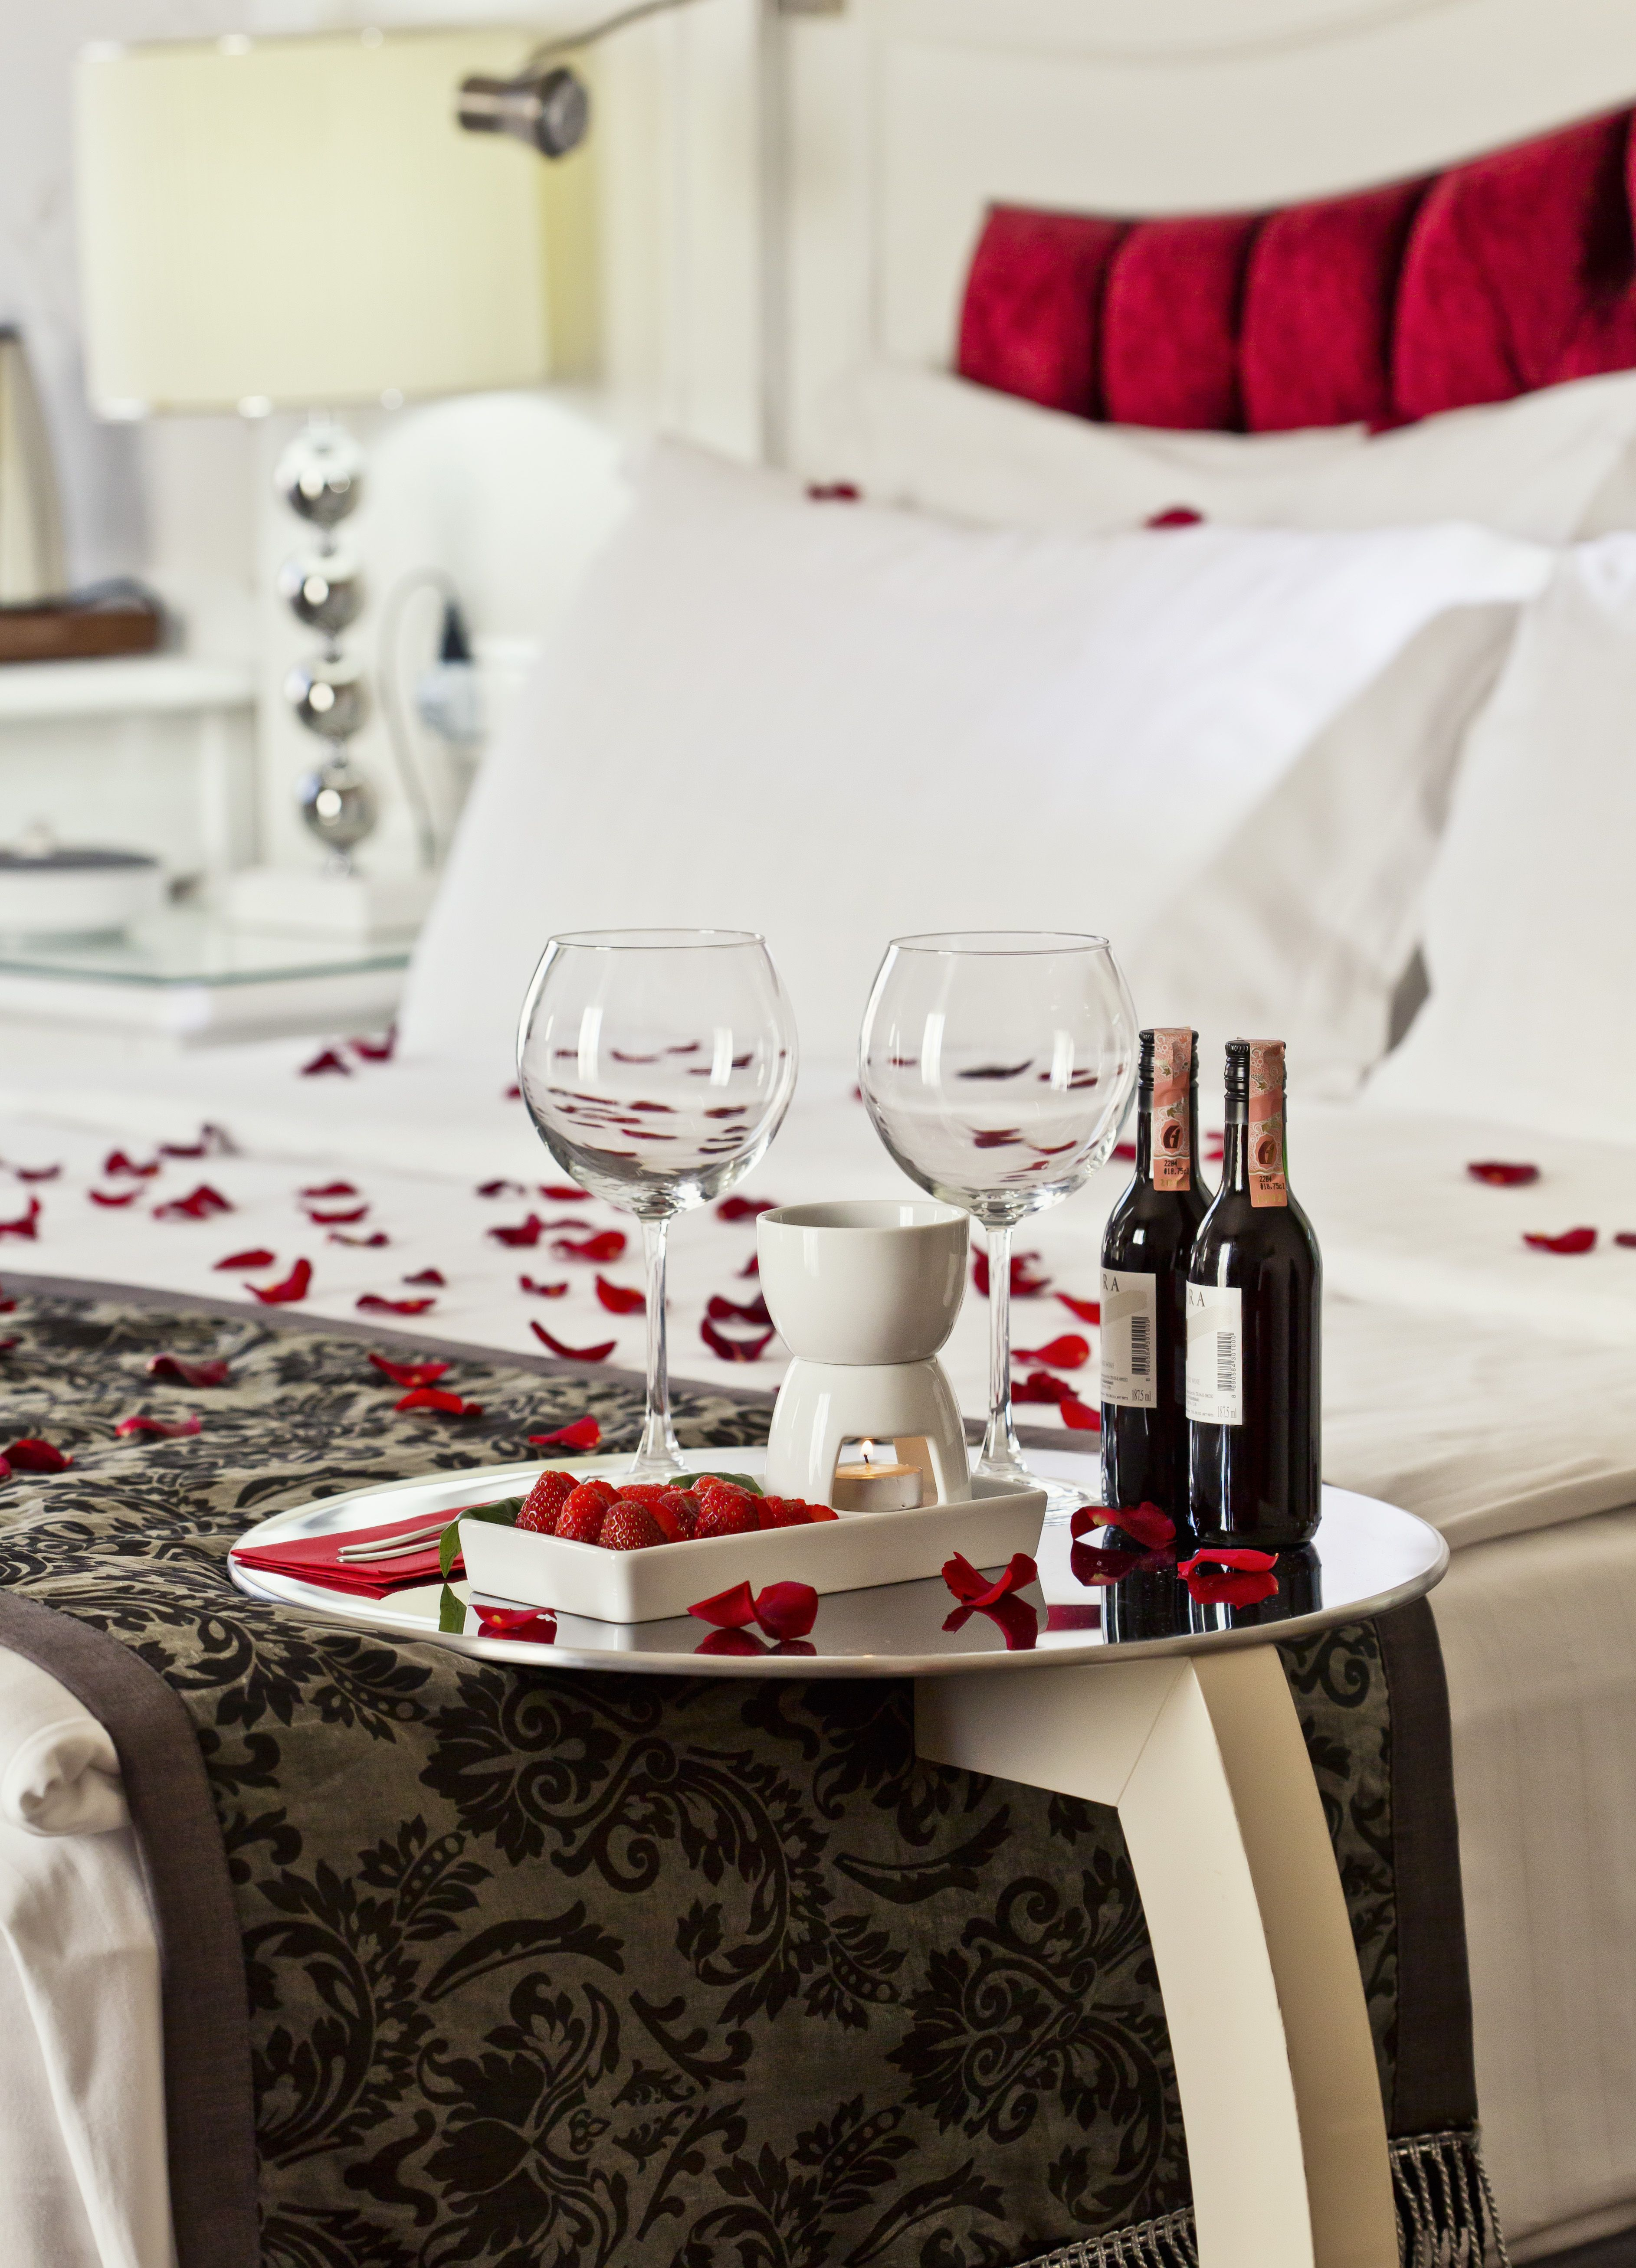 Hotel amira istanbul romance package rose petals bed - Romantic decorations for hotel rooms ...